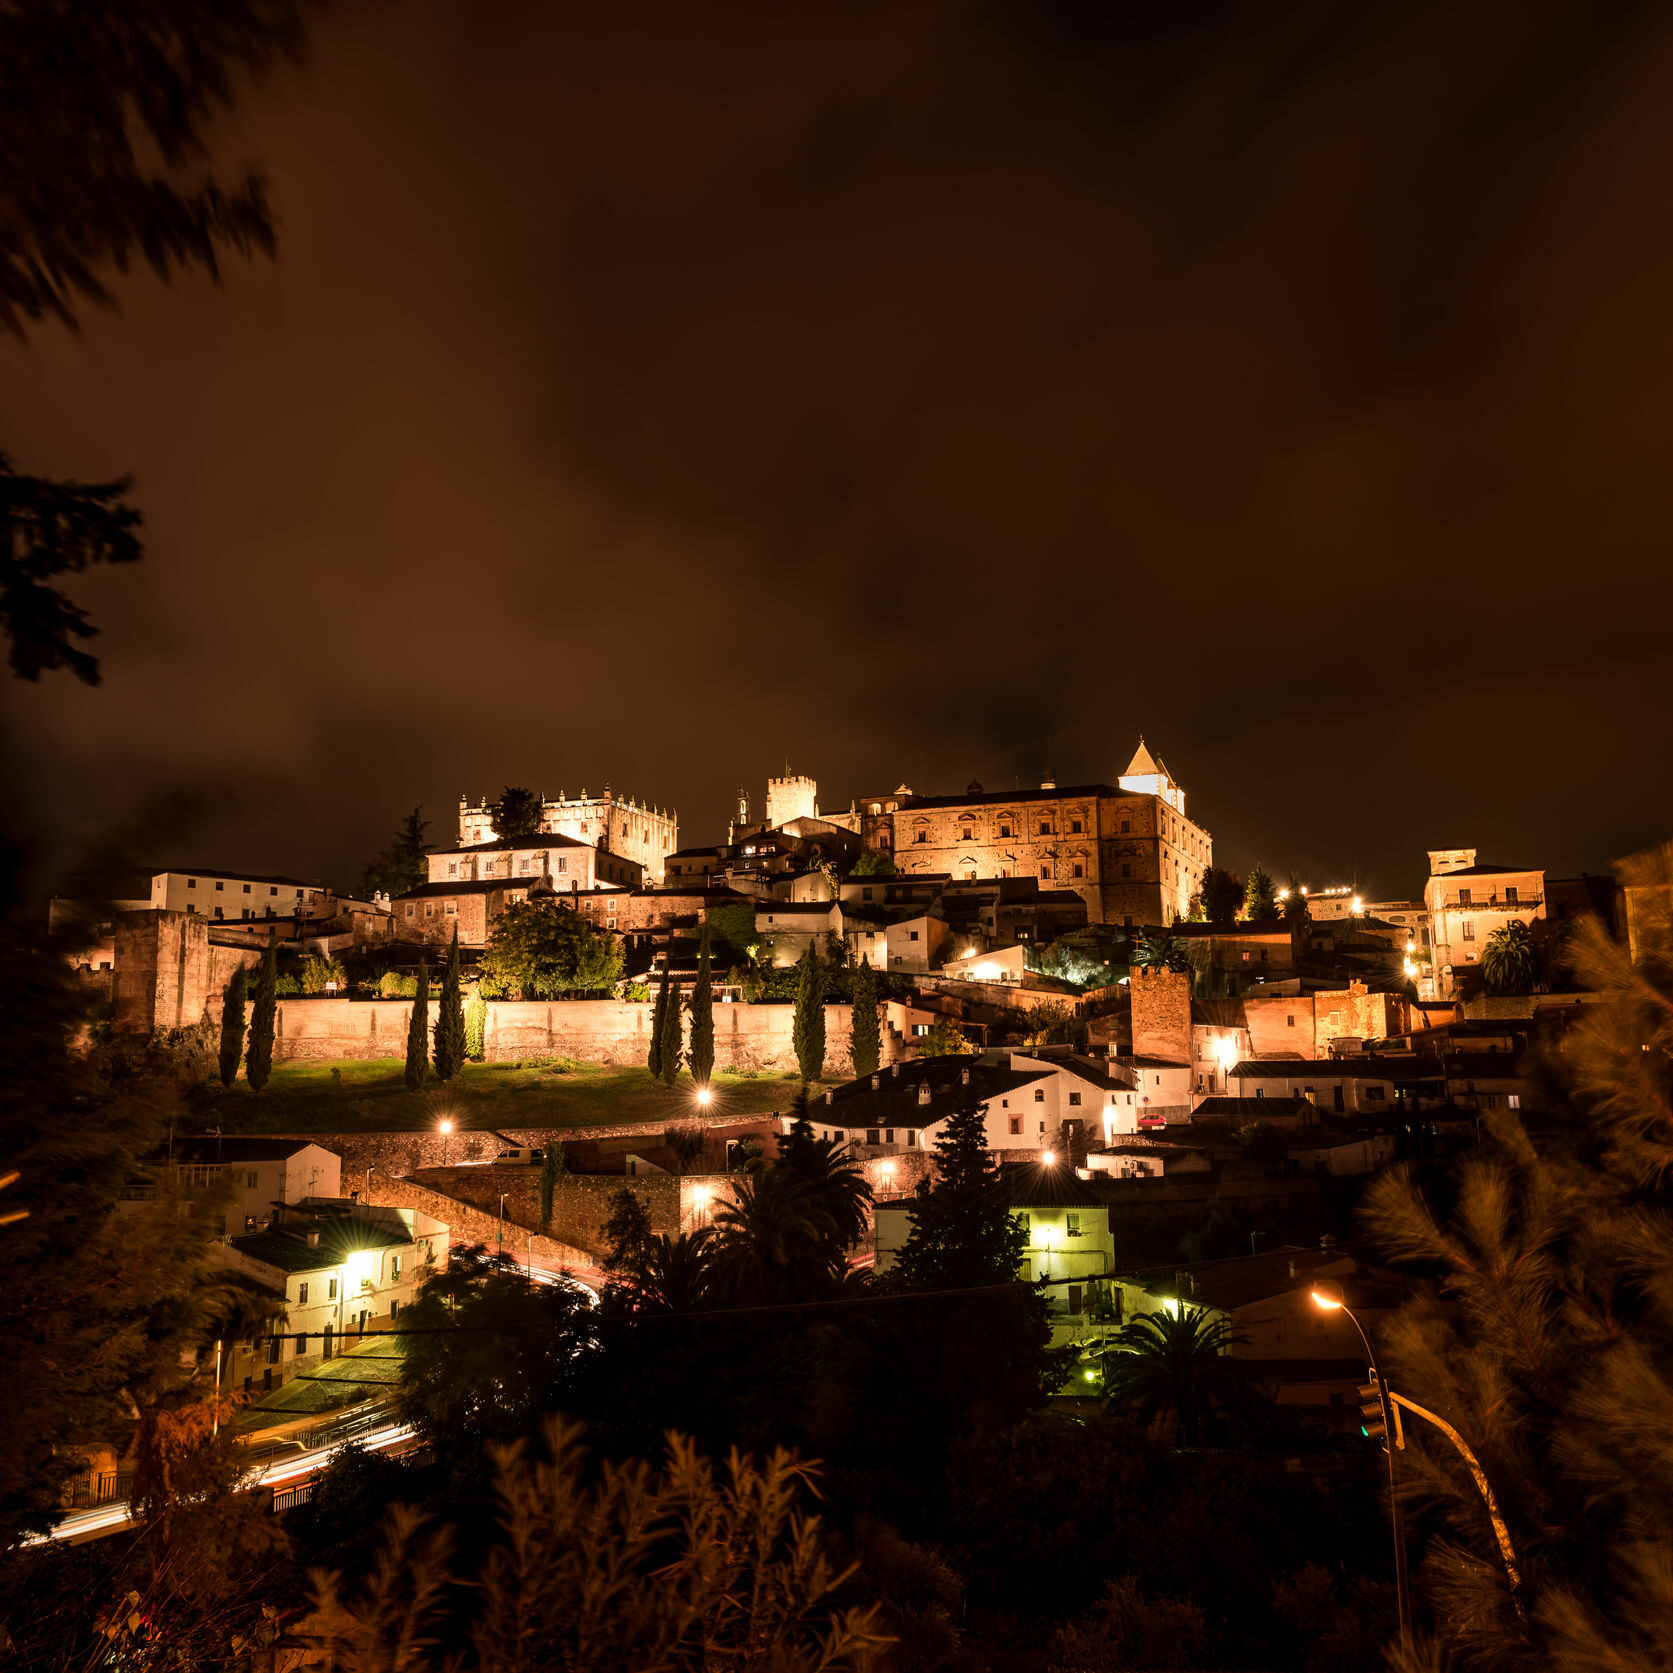 67149192 - caceres is a province located to the west of spain, to the north of the autonomous community of extremadura.